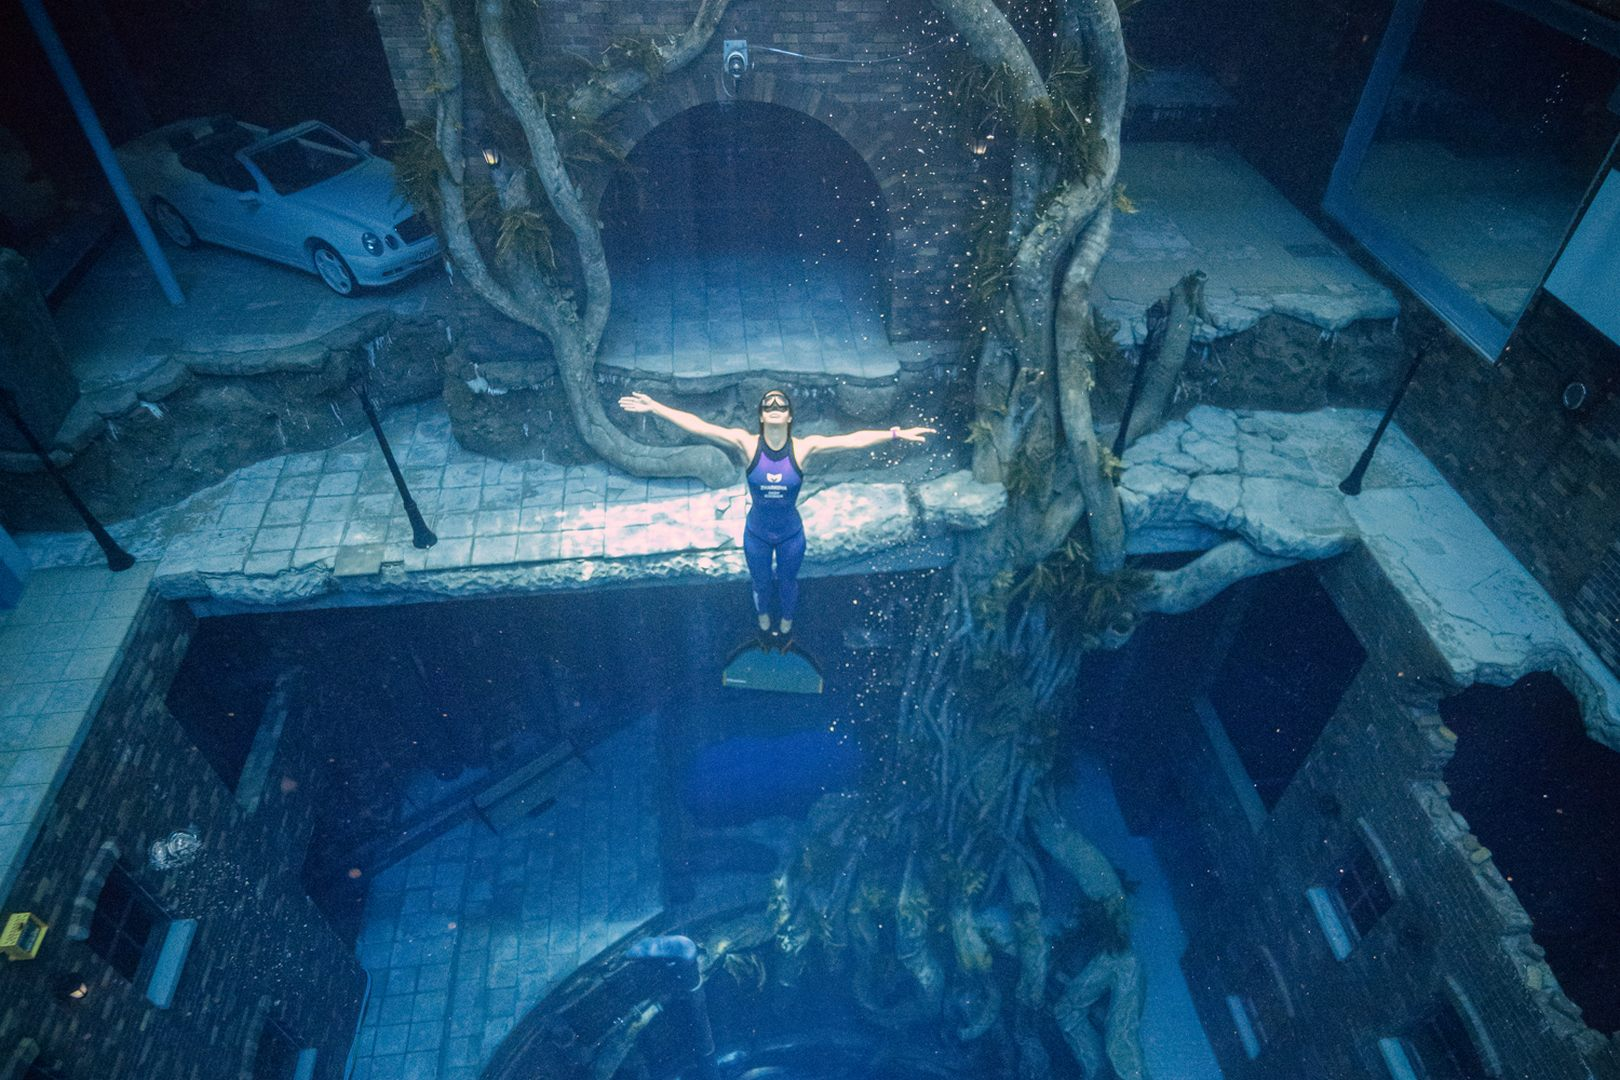 The world's deepest diving swimming pool in Dubai is now open to public